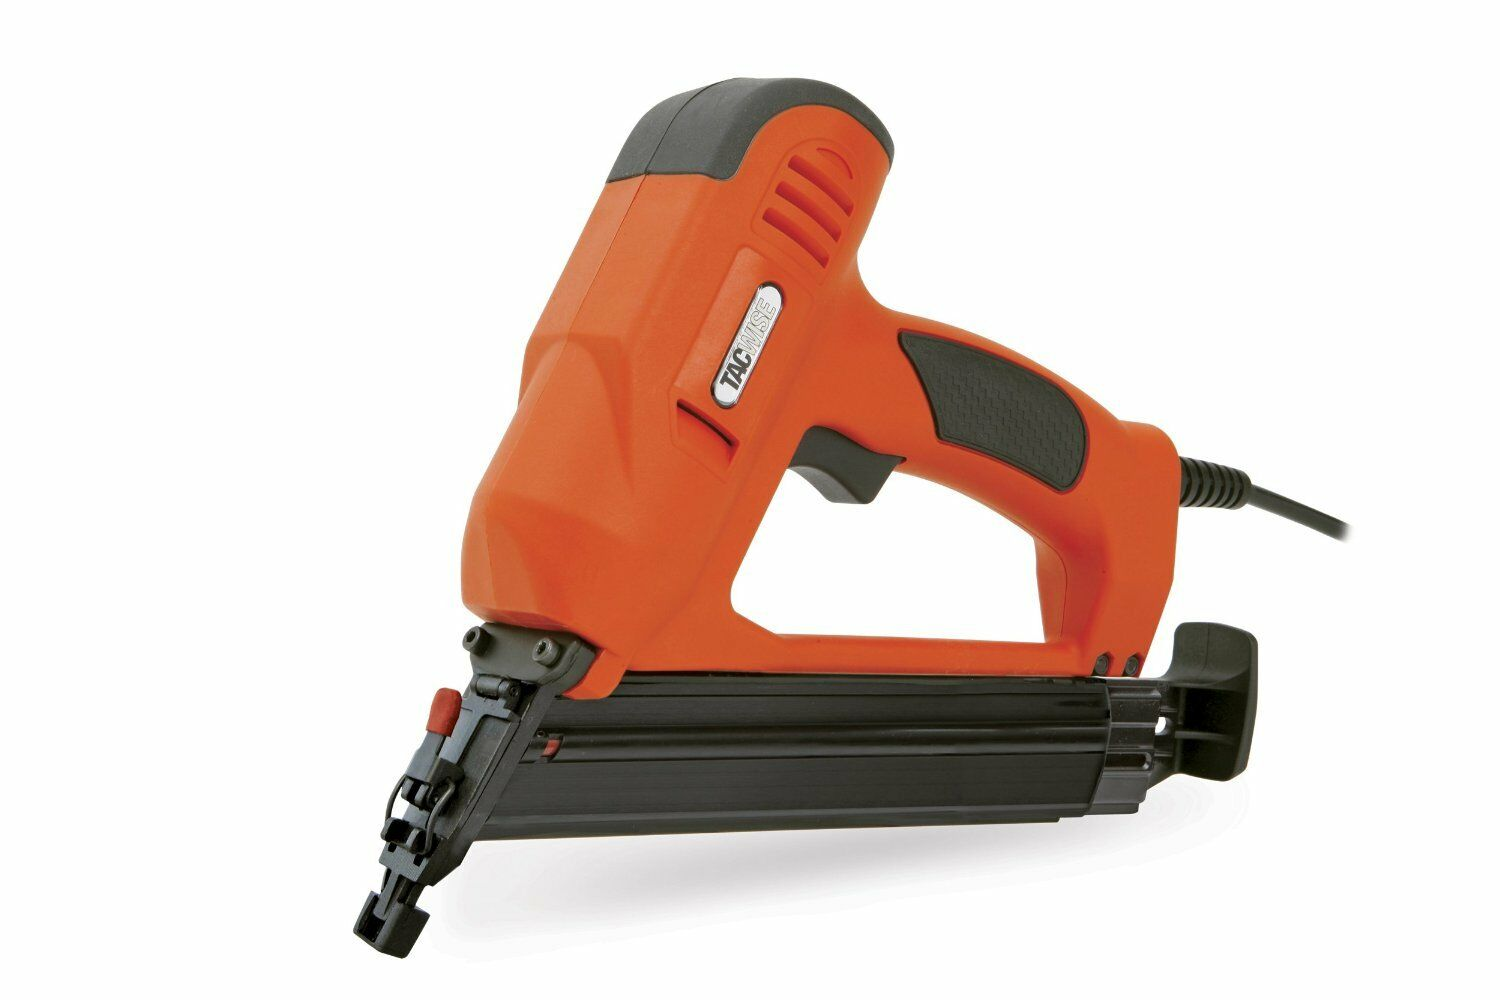 TACWISE 400ELS ELECTRIC ANGLED NAIL GUN, FIRES 500 TYPE 18G ANGLED NAILS 20-40mm